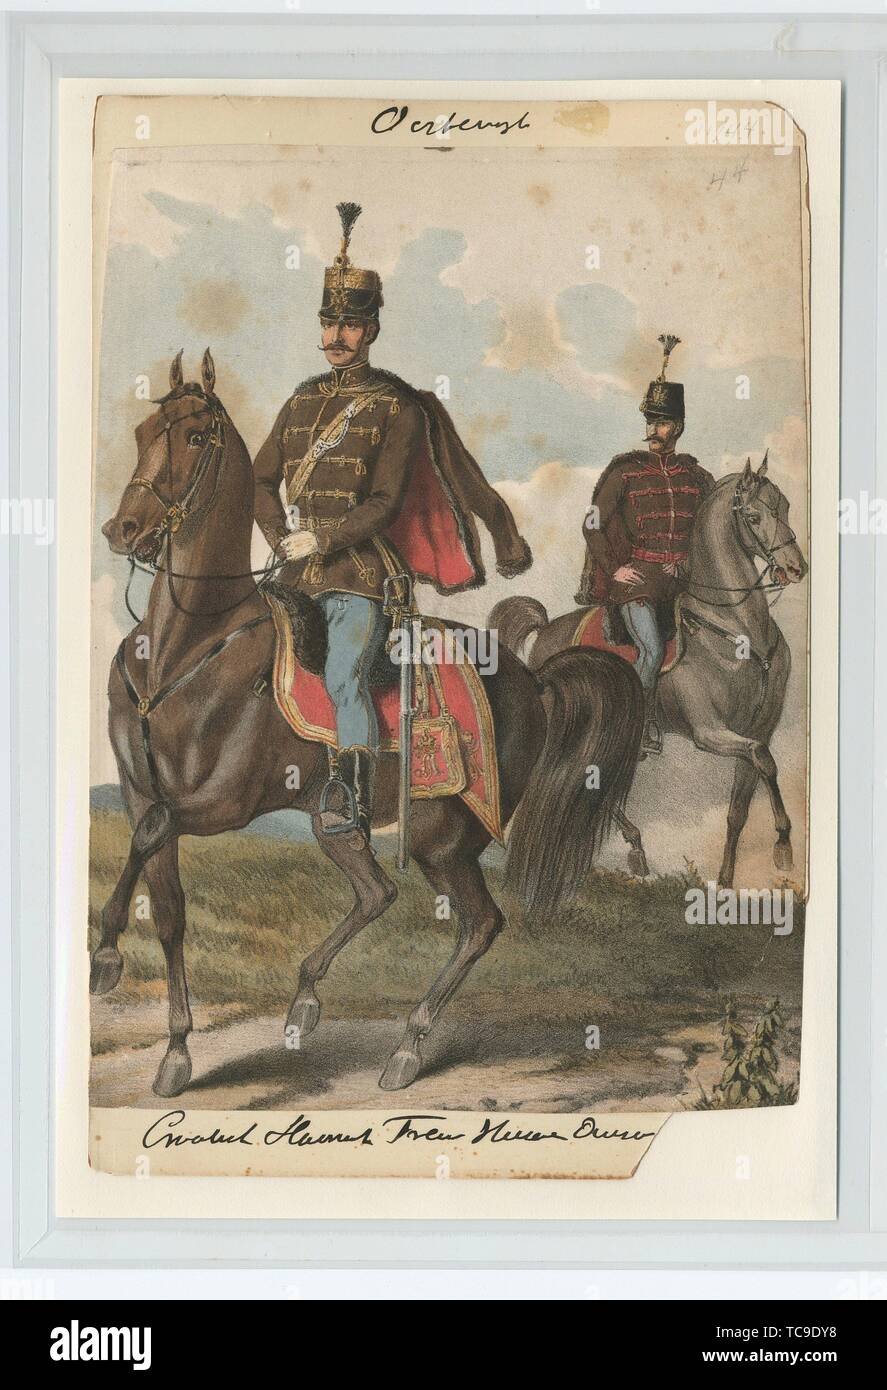 Croatisch Slavonisch Frei Husar Owsc[]. Vinkhuijzen, Hendrik Jacobus (Collector). The Vinkhuijzen collection of military uniforms Austria Austria, - Stock Image